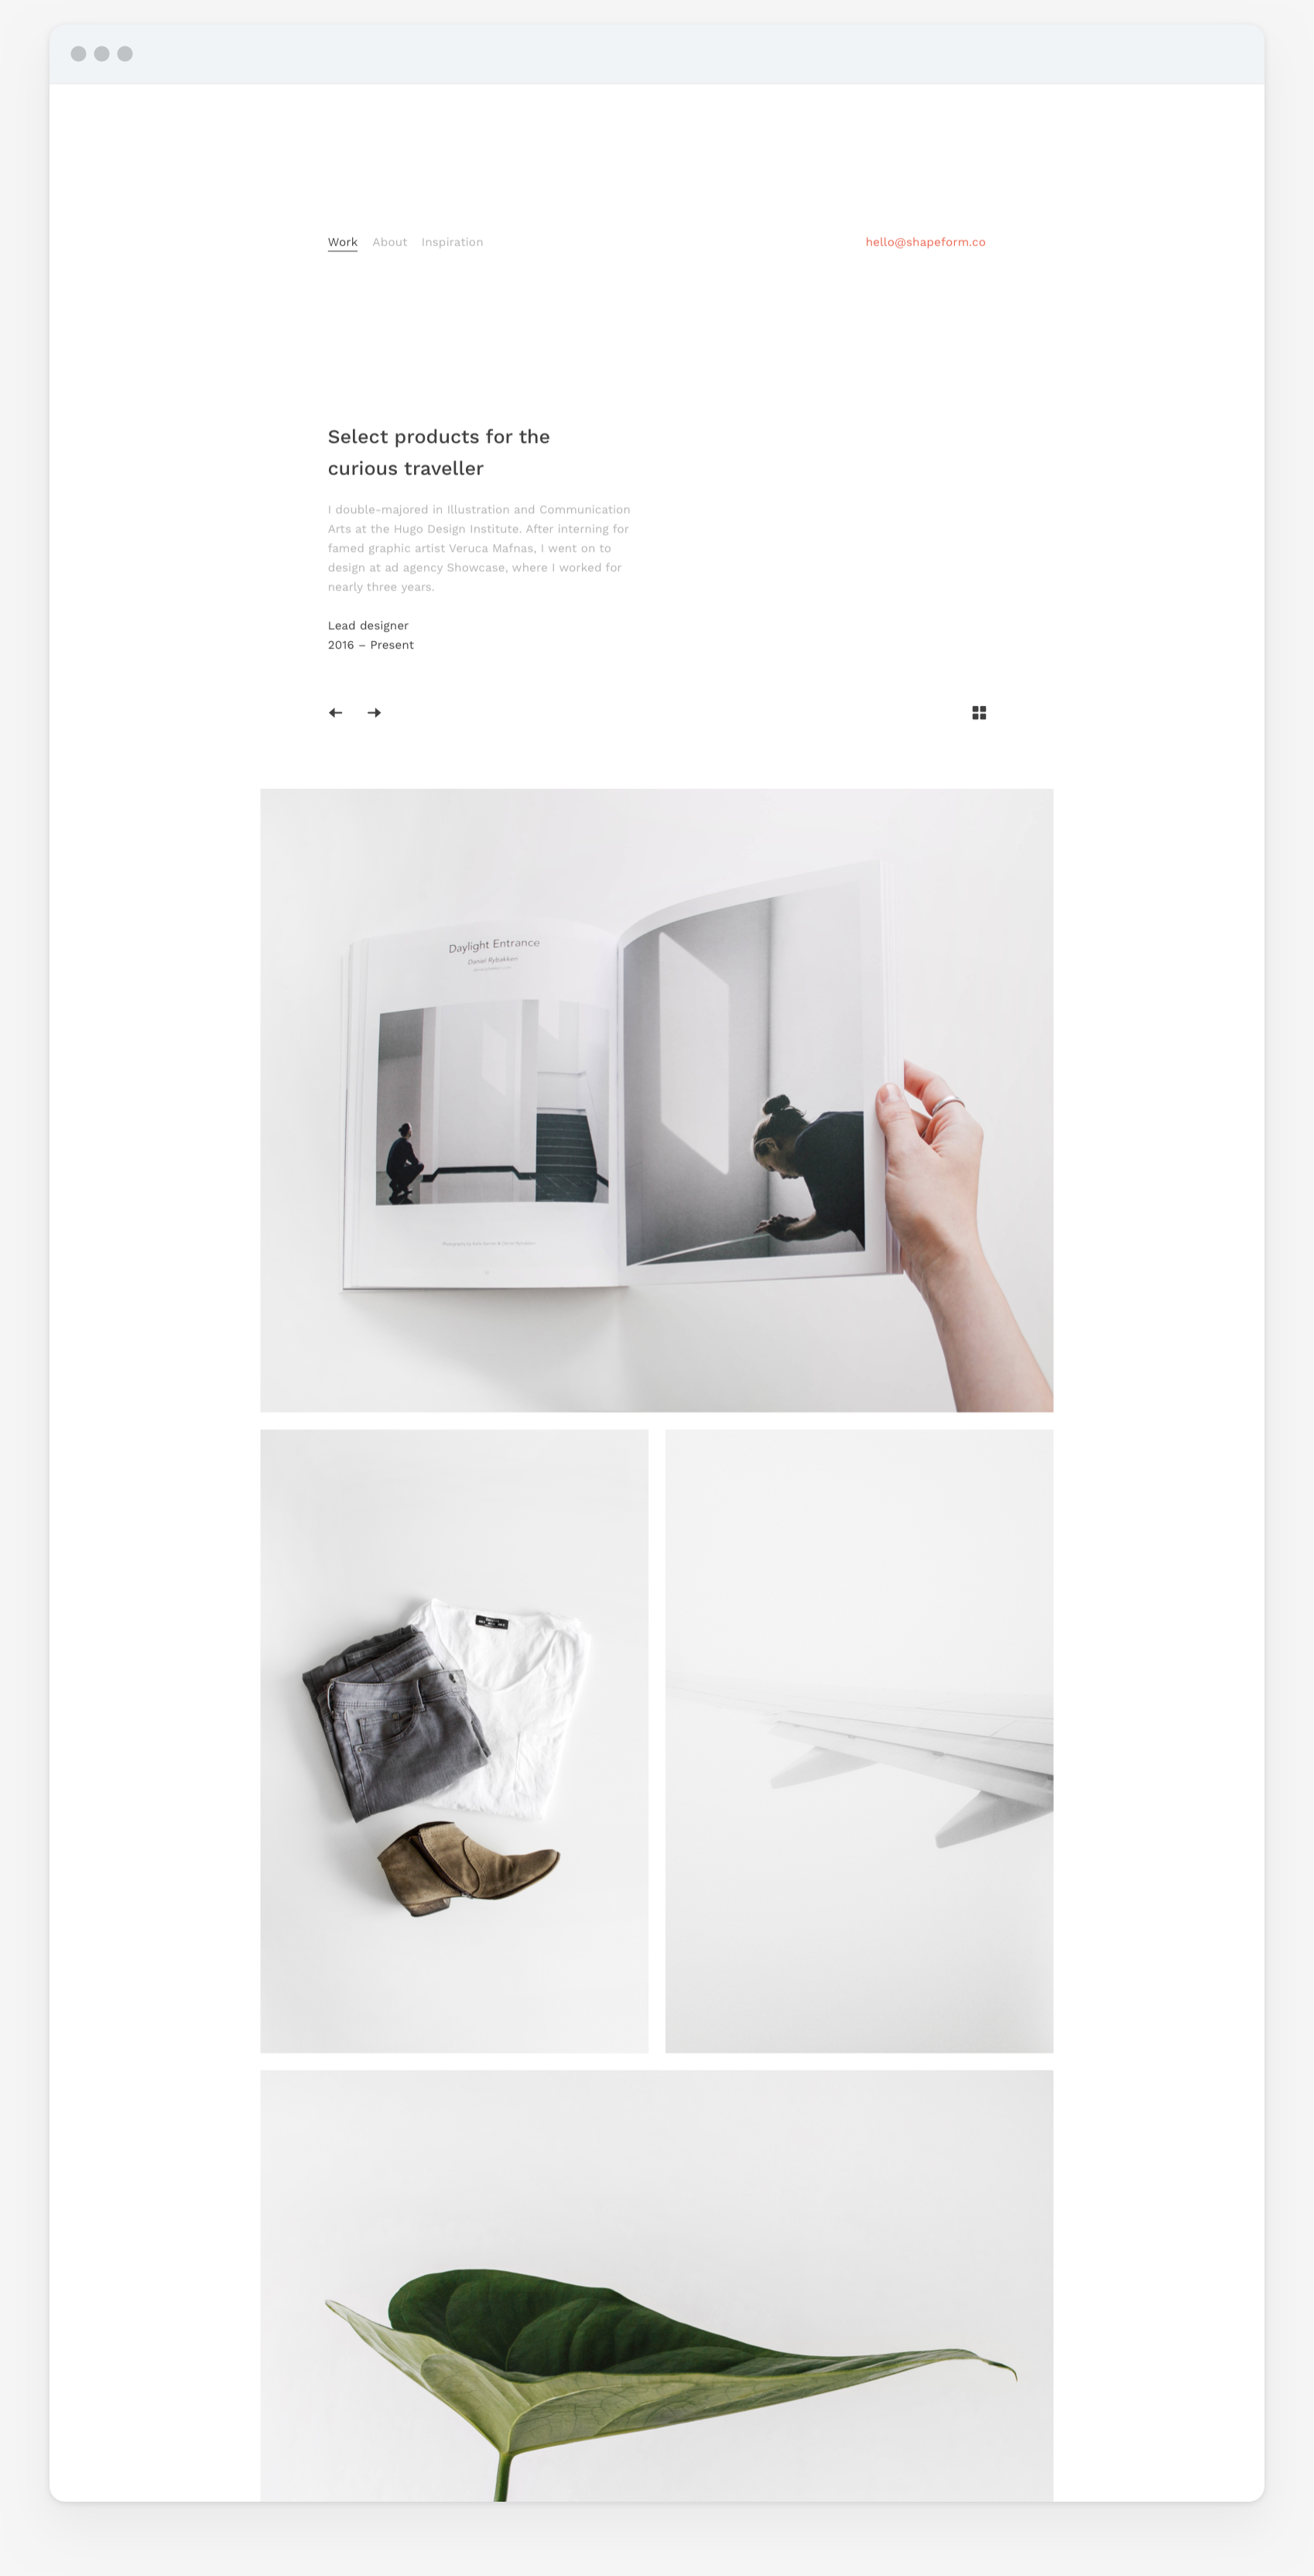 Shapeform Theme. website design of theme for designers, photographers and content creators. Project case study page.